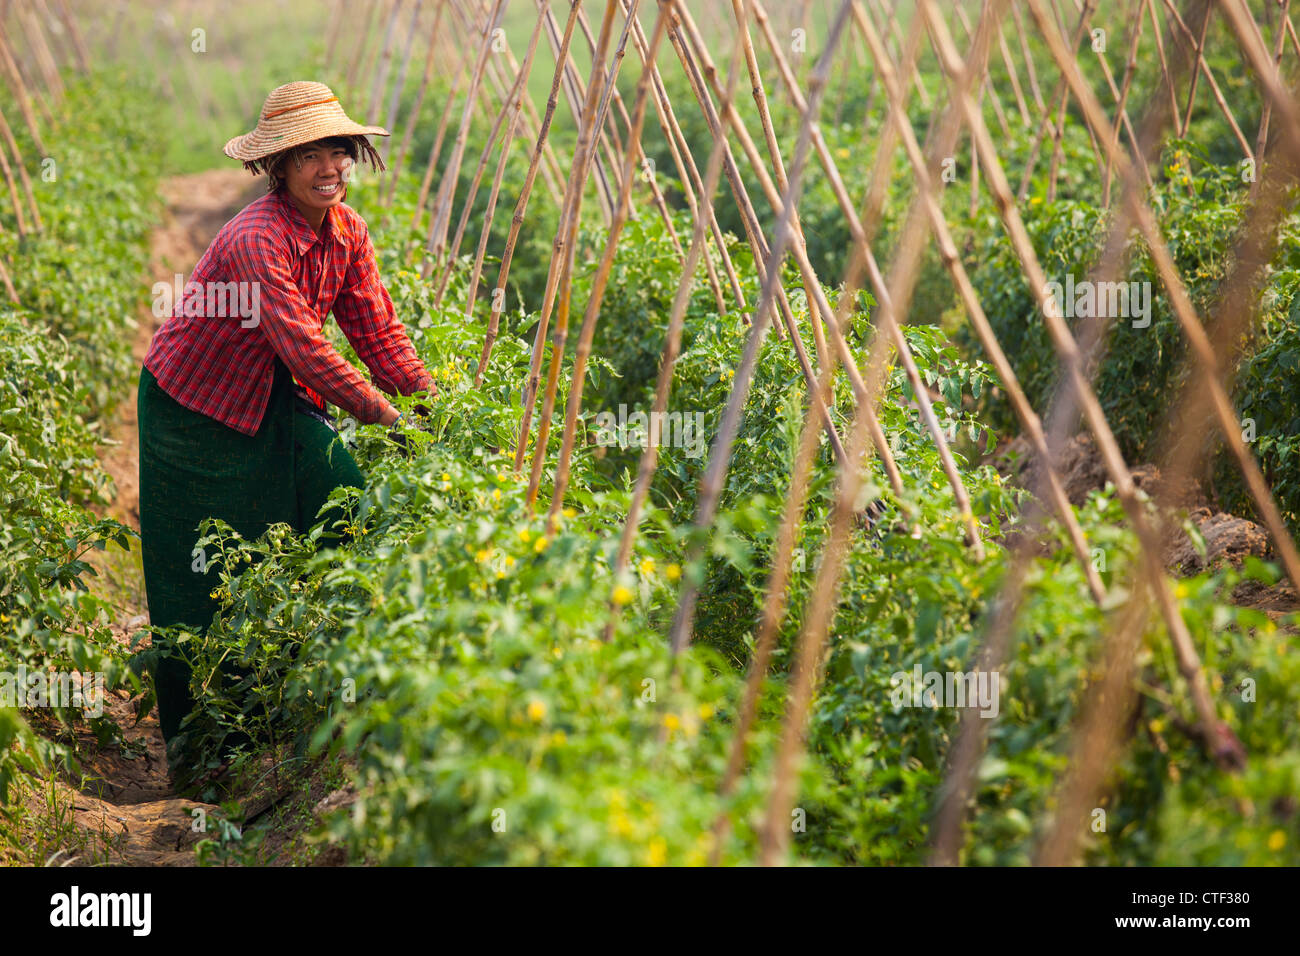 Femme au Myanmar l'agriculture tomate Photo Stock